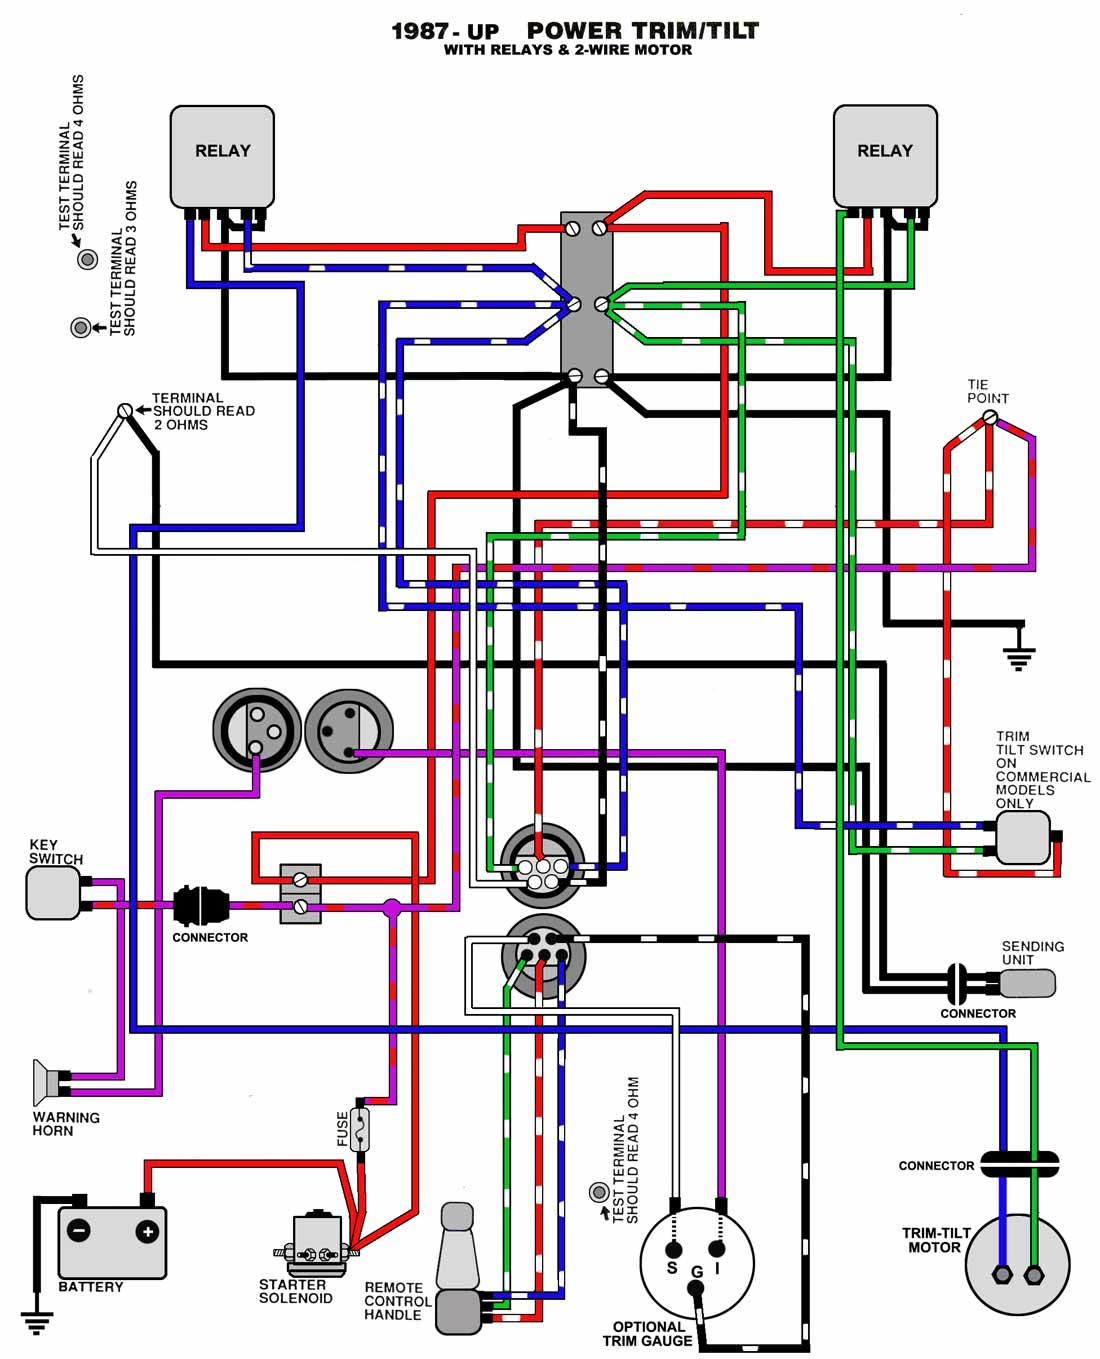 TnT_87_UP mastertech marine evinrude johnson outboard wiring diagrams outboard motor wiring diagram at nearapp.co